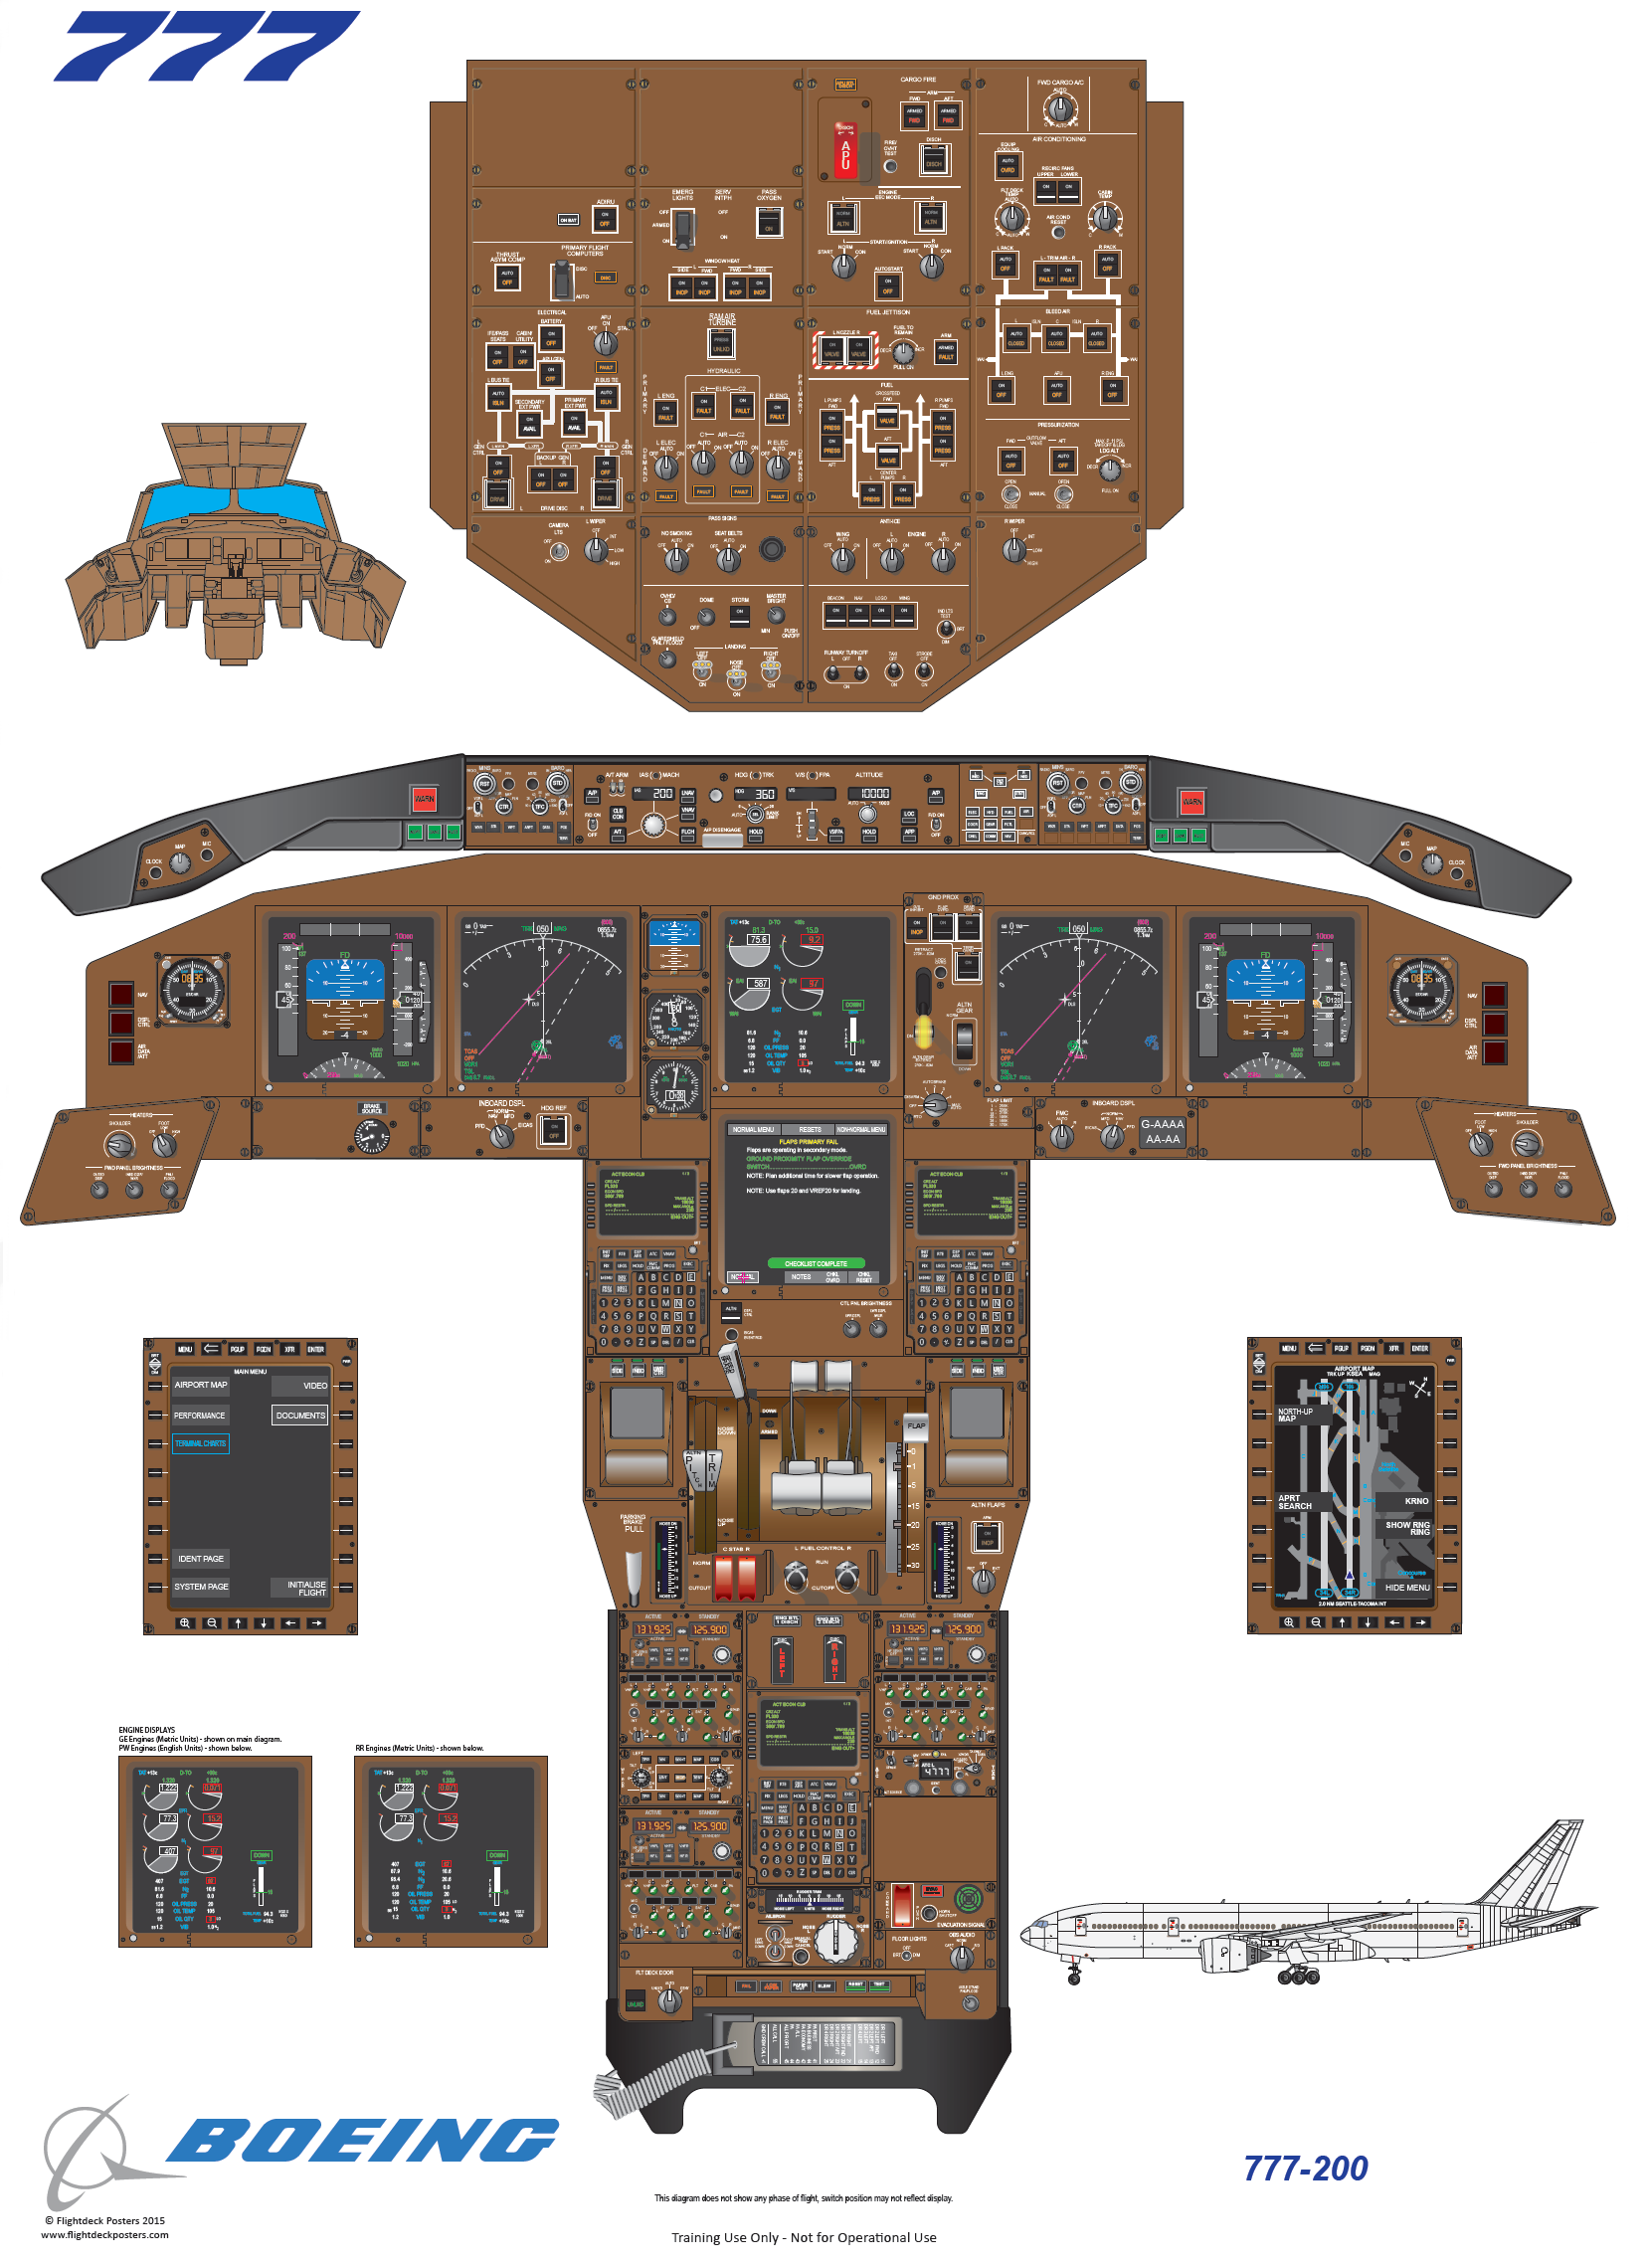 hight resolution of boeing 777 cockpit diagram used for training pilots